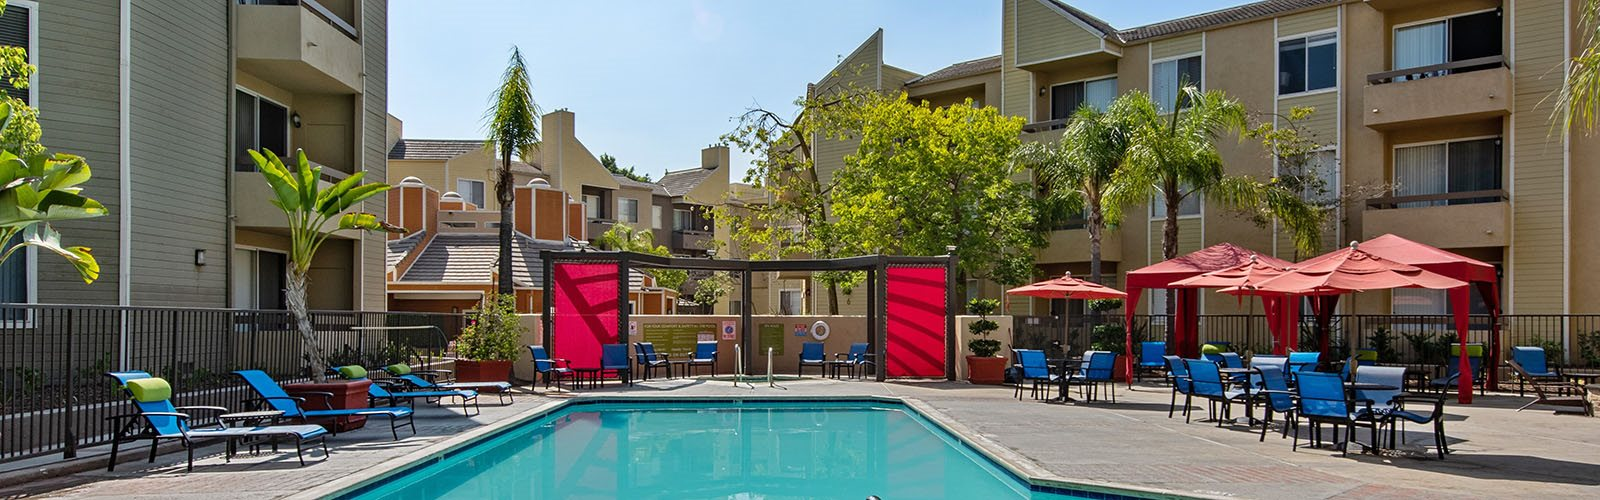 Pool with lounge chairs l  l Enclave apartments in Paramount CA